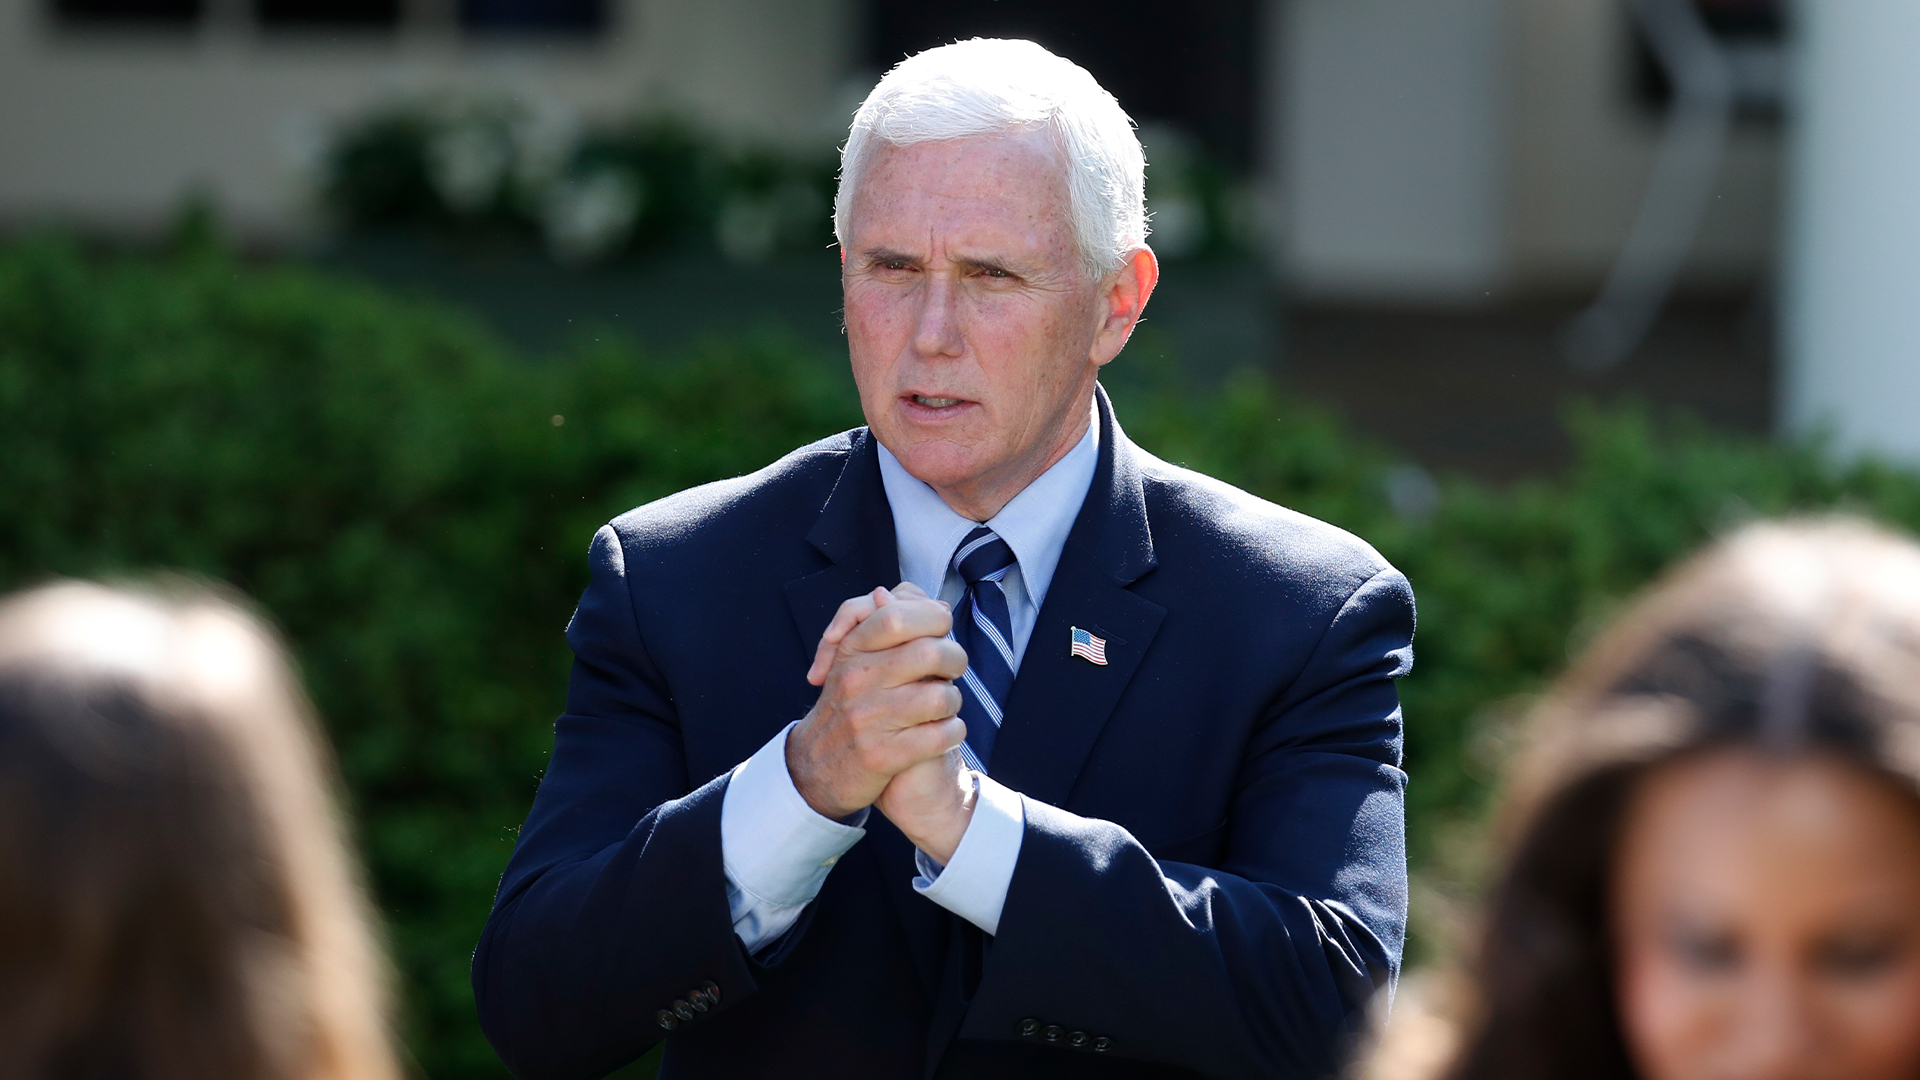 Wfla Halloween Meet 2020 VP Mike Pence to meet with Gov. DeSantis in Tampa Thursday   WFLA